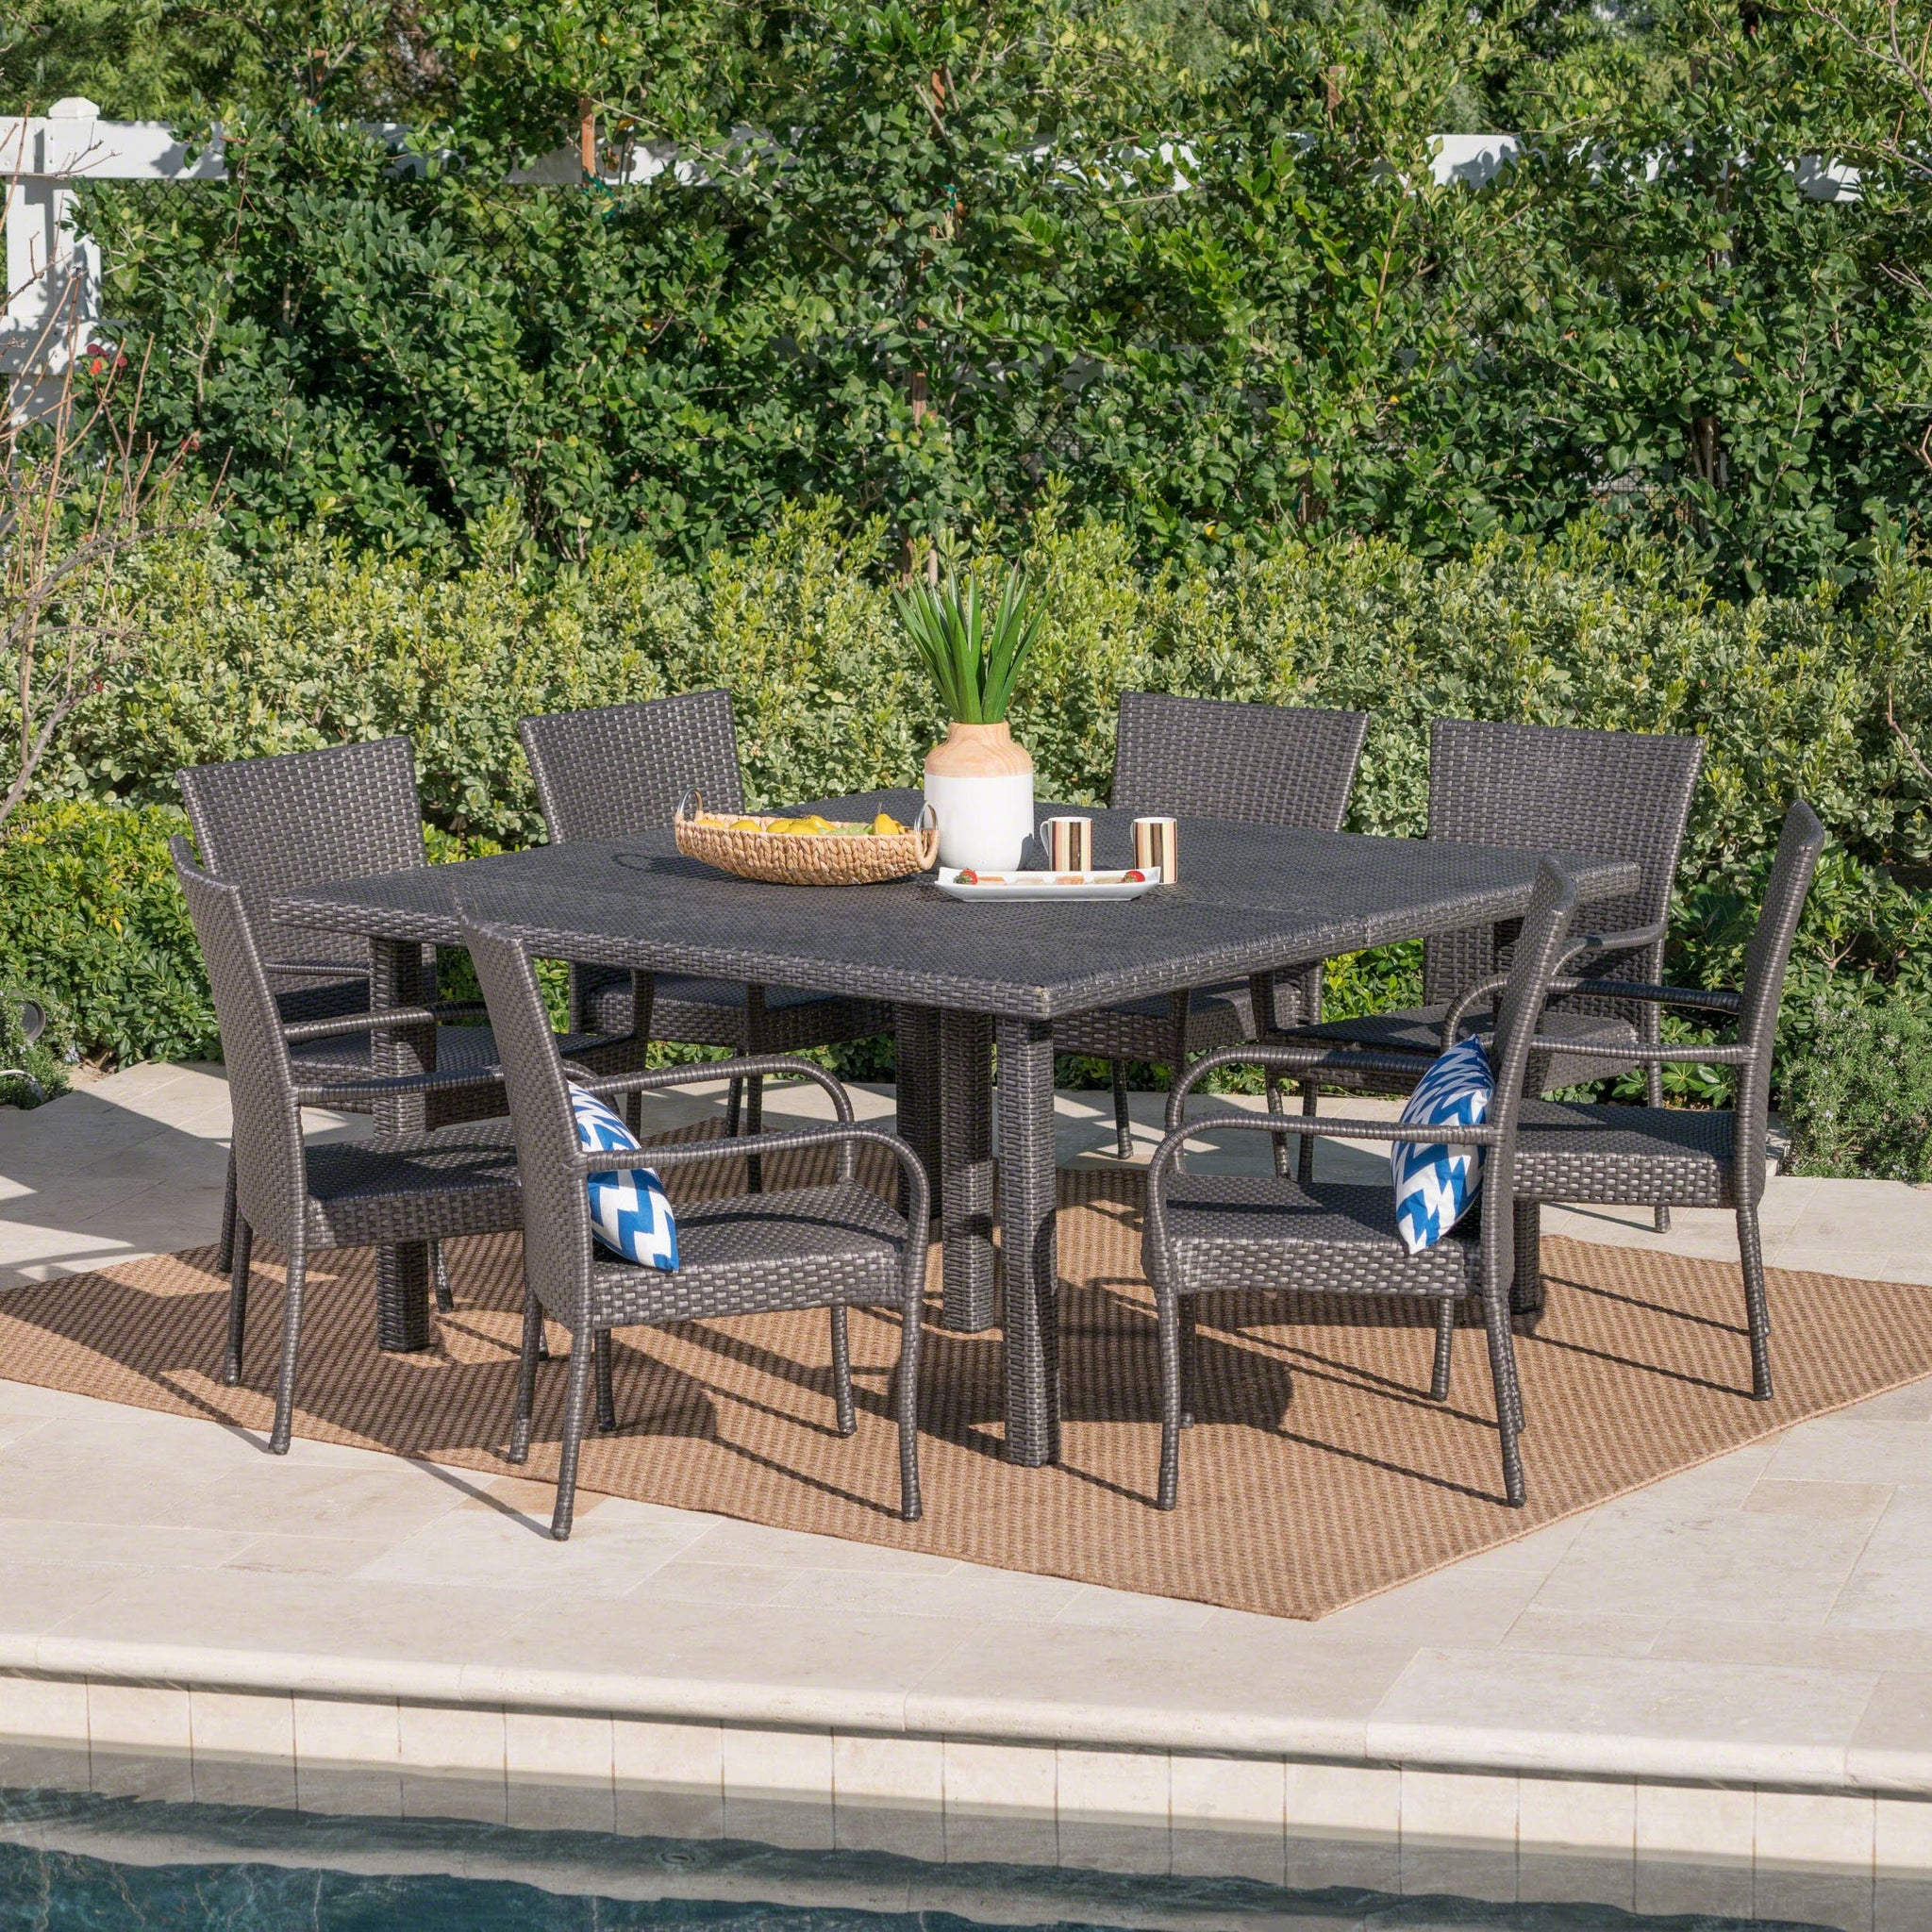 Finbar Outdoor 9 Piece Stacking Wicker Square Dining Set